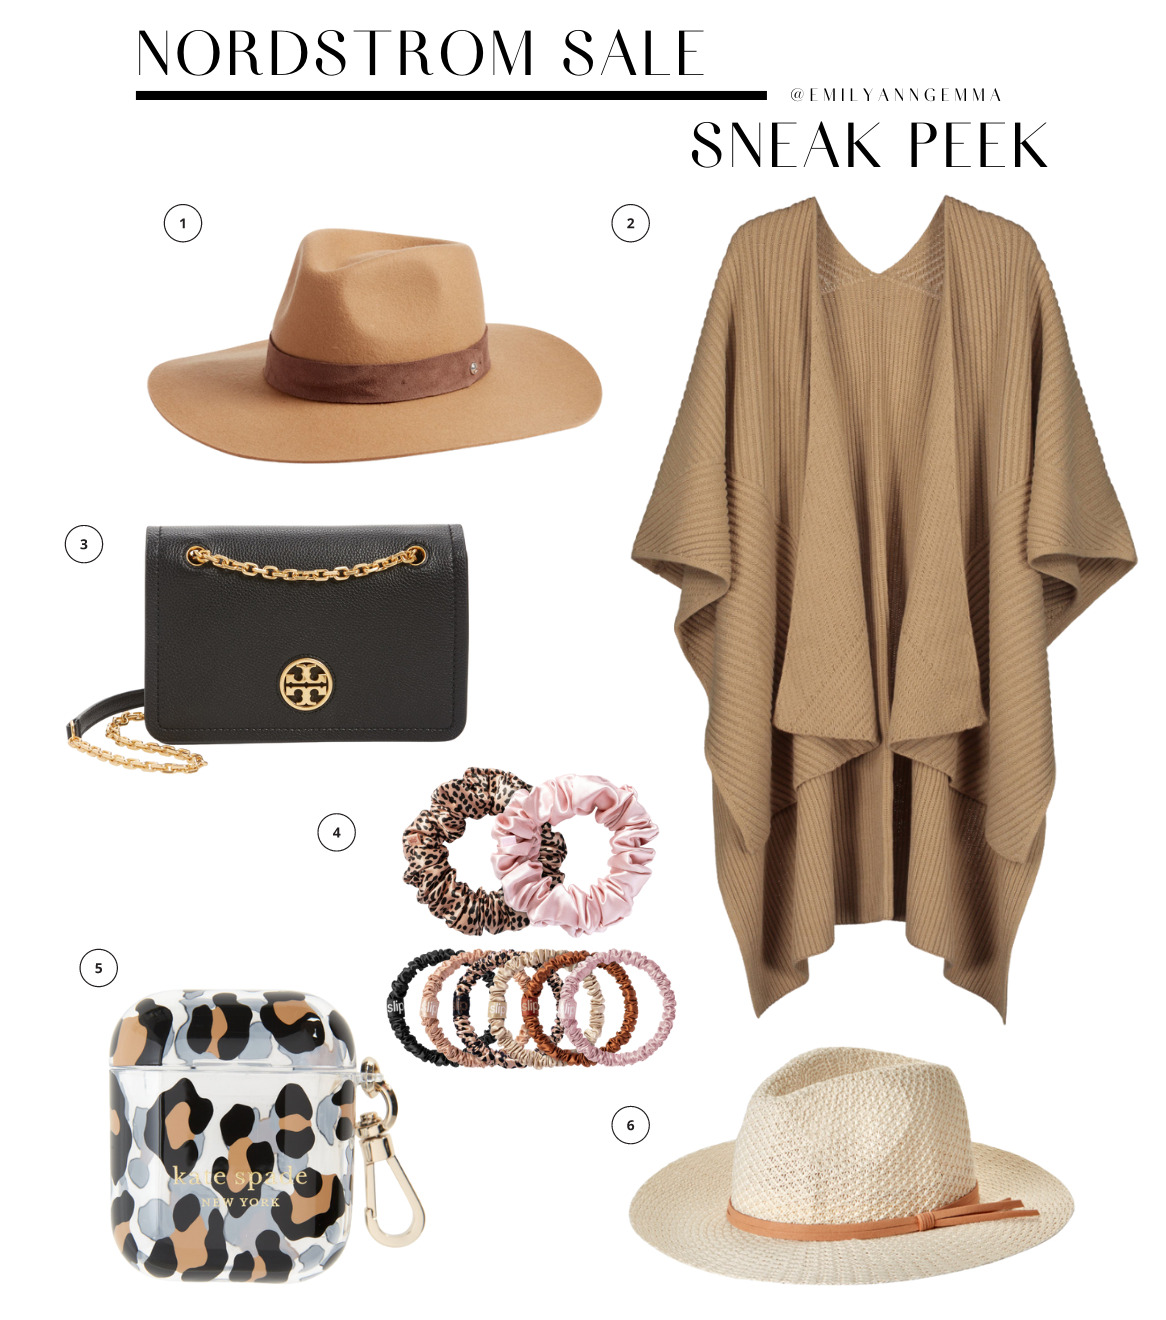 nsale 2021, nordstrom anniversary sale 2021, nSALE hats accessories and bags, must have blog posts nordstrom sale 2020, Emily Ann Gemma, the sweetest thing blog | Nordstrom Anniversary Sale by popular US fashion blog, The Sweetest Thing: image of Nordstrom Sale items. | Nordstrom Anniversary Sale by popular US fashion blog, The Sweetest Thing: collage image of a Rag and Bone wool hat, Tory Burch purse, silk scrunchies, Treasure and Bond woven fedora tan knit kimono, and leopard print AirPods case.